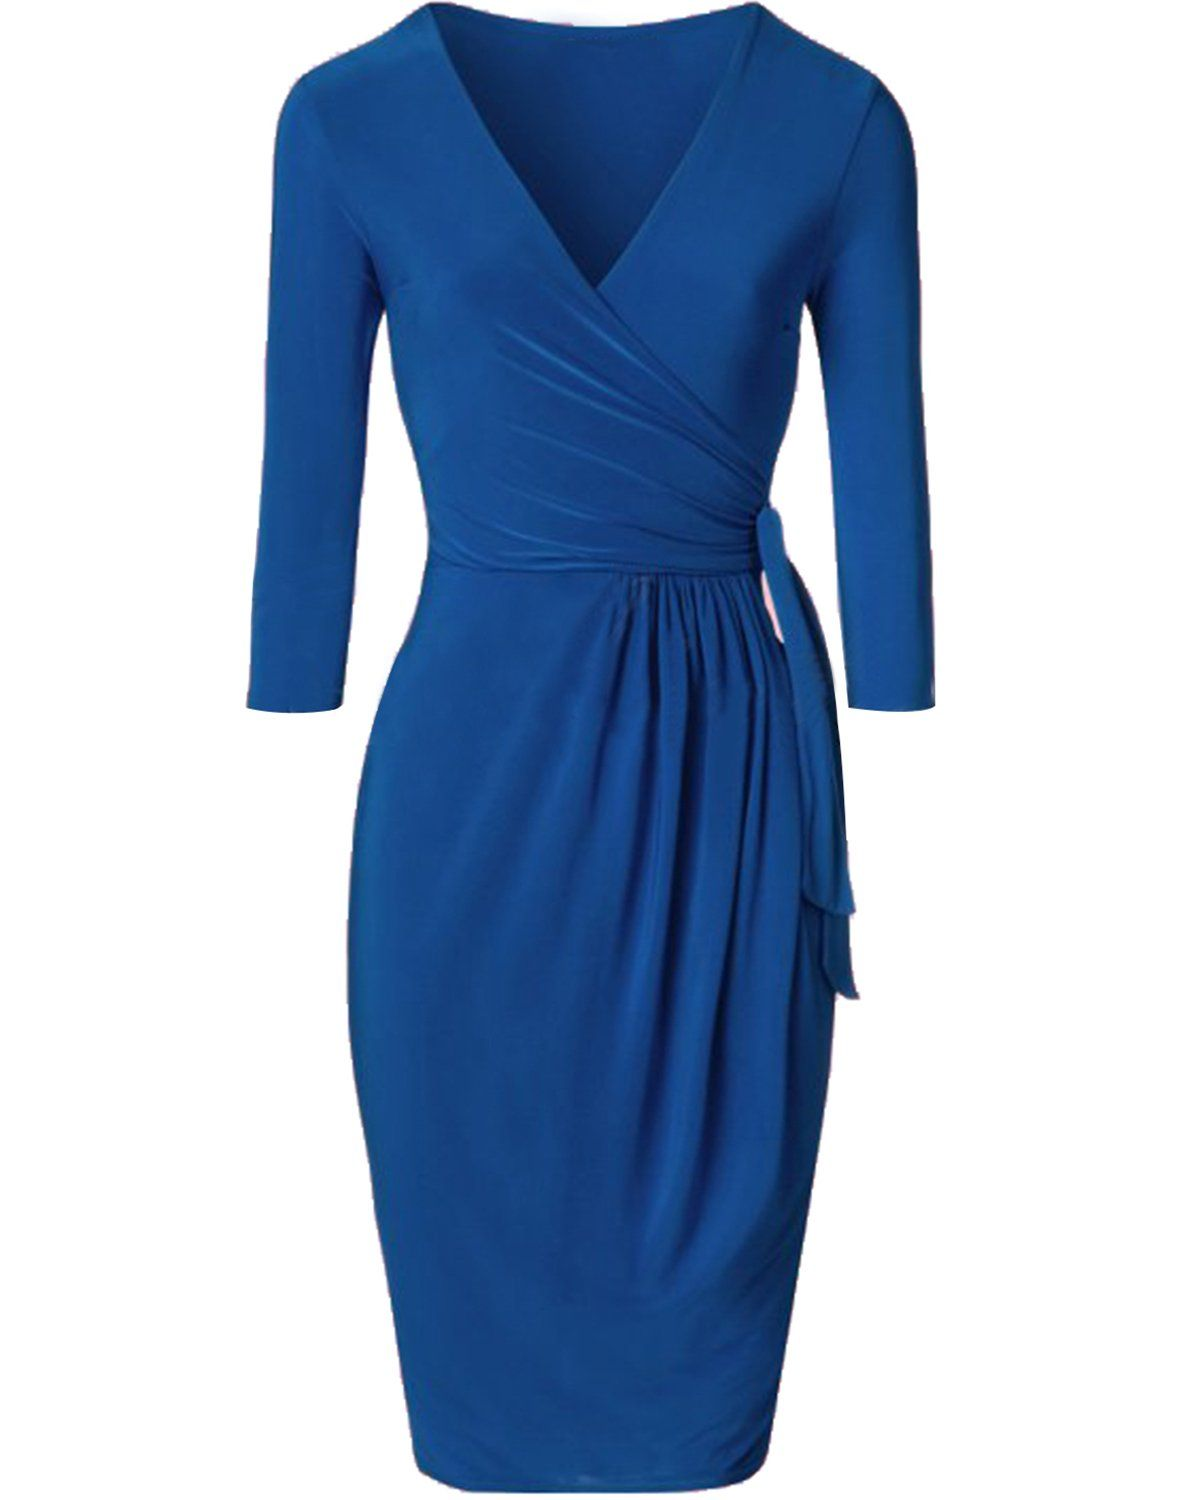 Maternity Outfits Cool Maternity Dresses Tempt Me Women Vintage V Neck 3 4 Sleeve Bodycon Ruched Faux Wrap Dress Blue Me Wrap Dress Dresses Faux Wrap Dress [ 1500 x 1200 Pixel ]